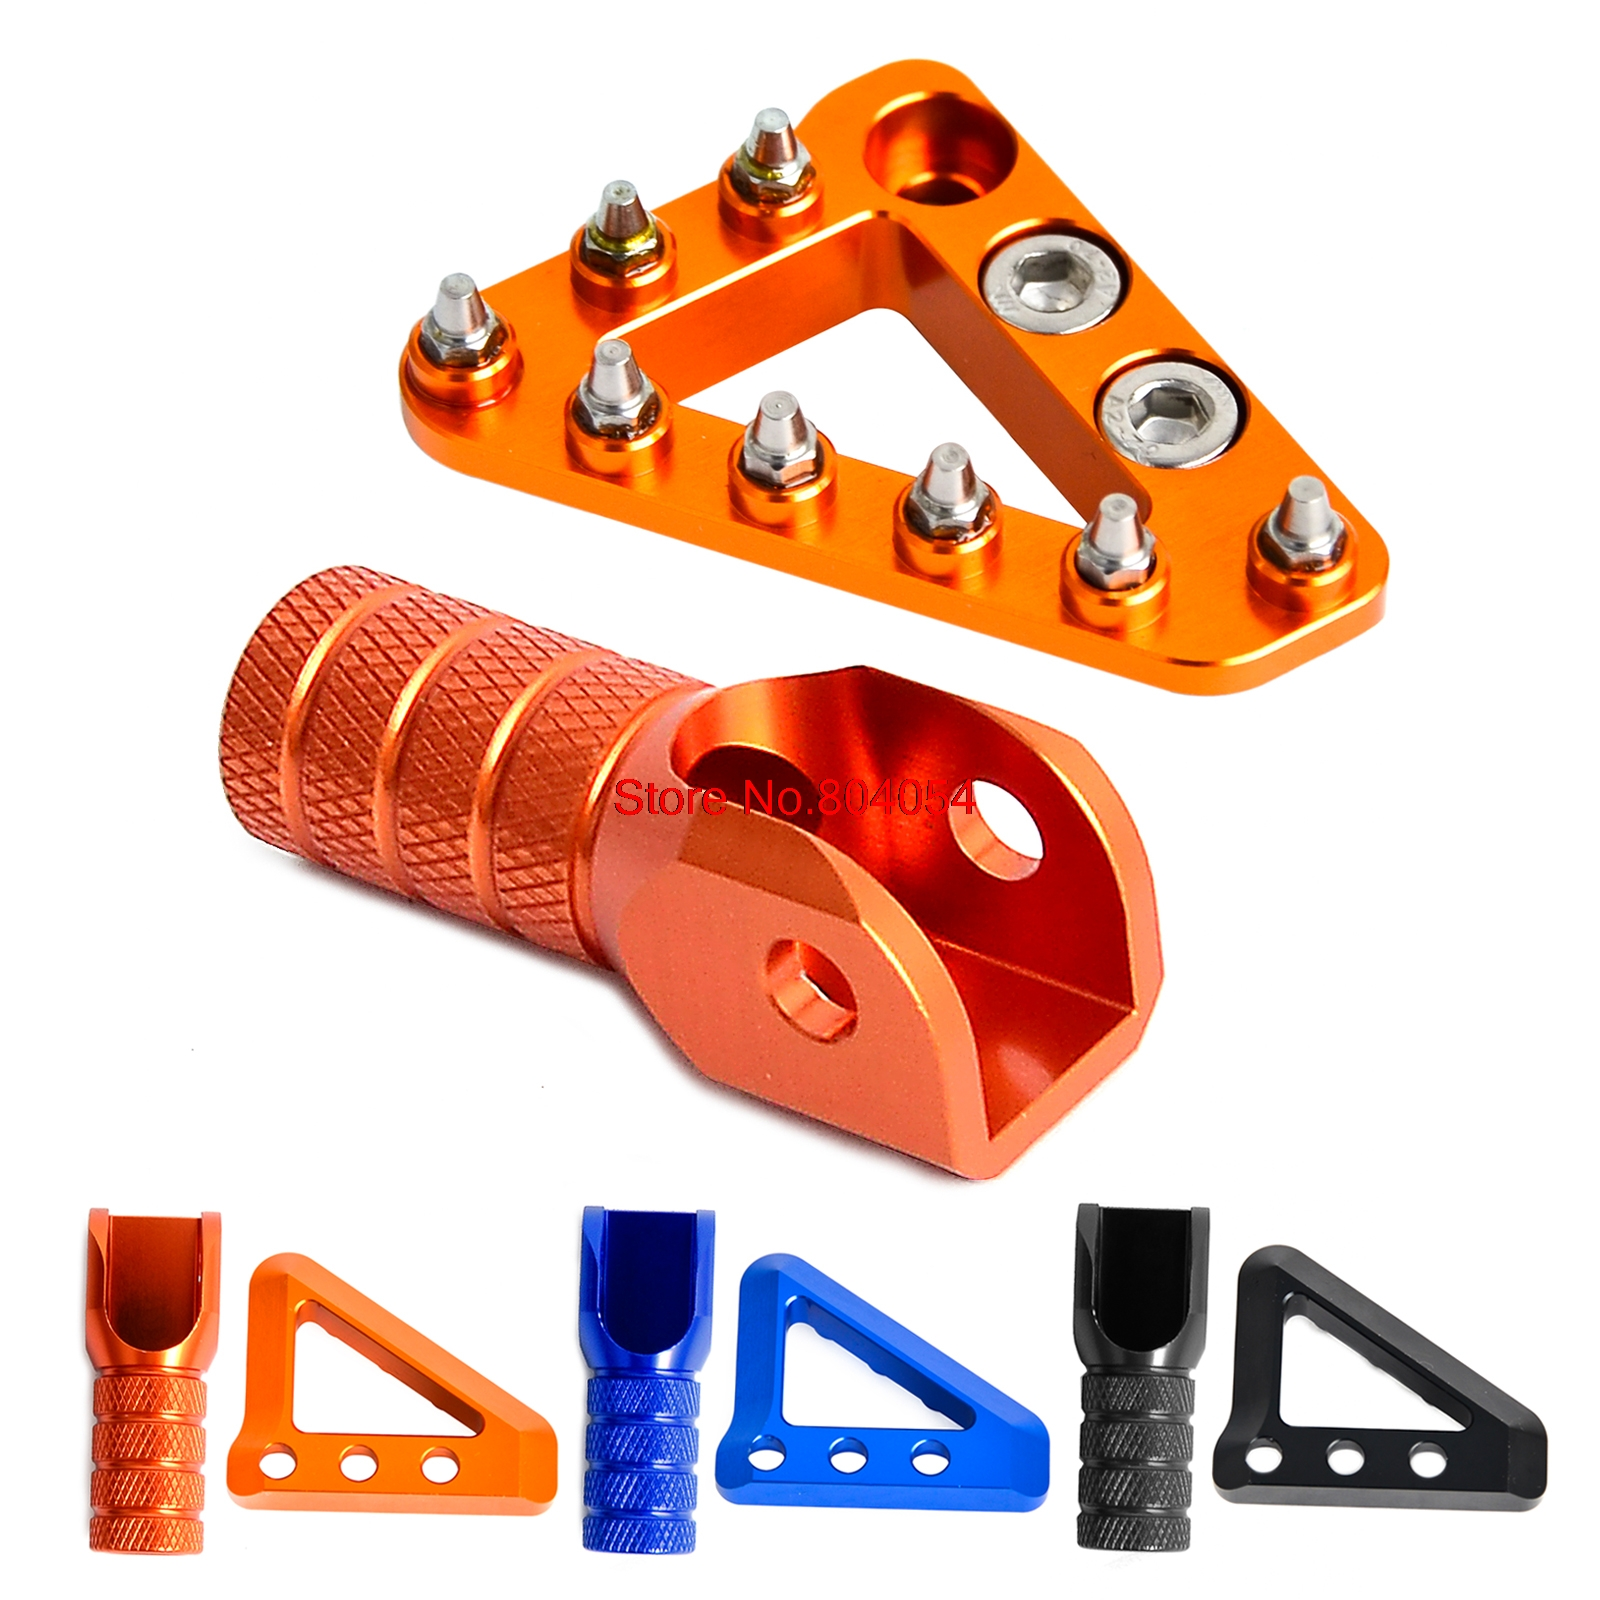 Brake Pedal Step & Shifter Lever Tip for KTM 125 200 250 300 350 400 450 500 520 525 530 SX SXF EXC EXC-F XCW XCF 2004-2015 orange cnc billet factory oil filter cover for ktm sx exc xc f xcf w 250 400 450 520 525 540 950 990